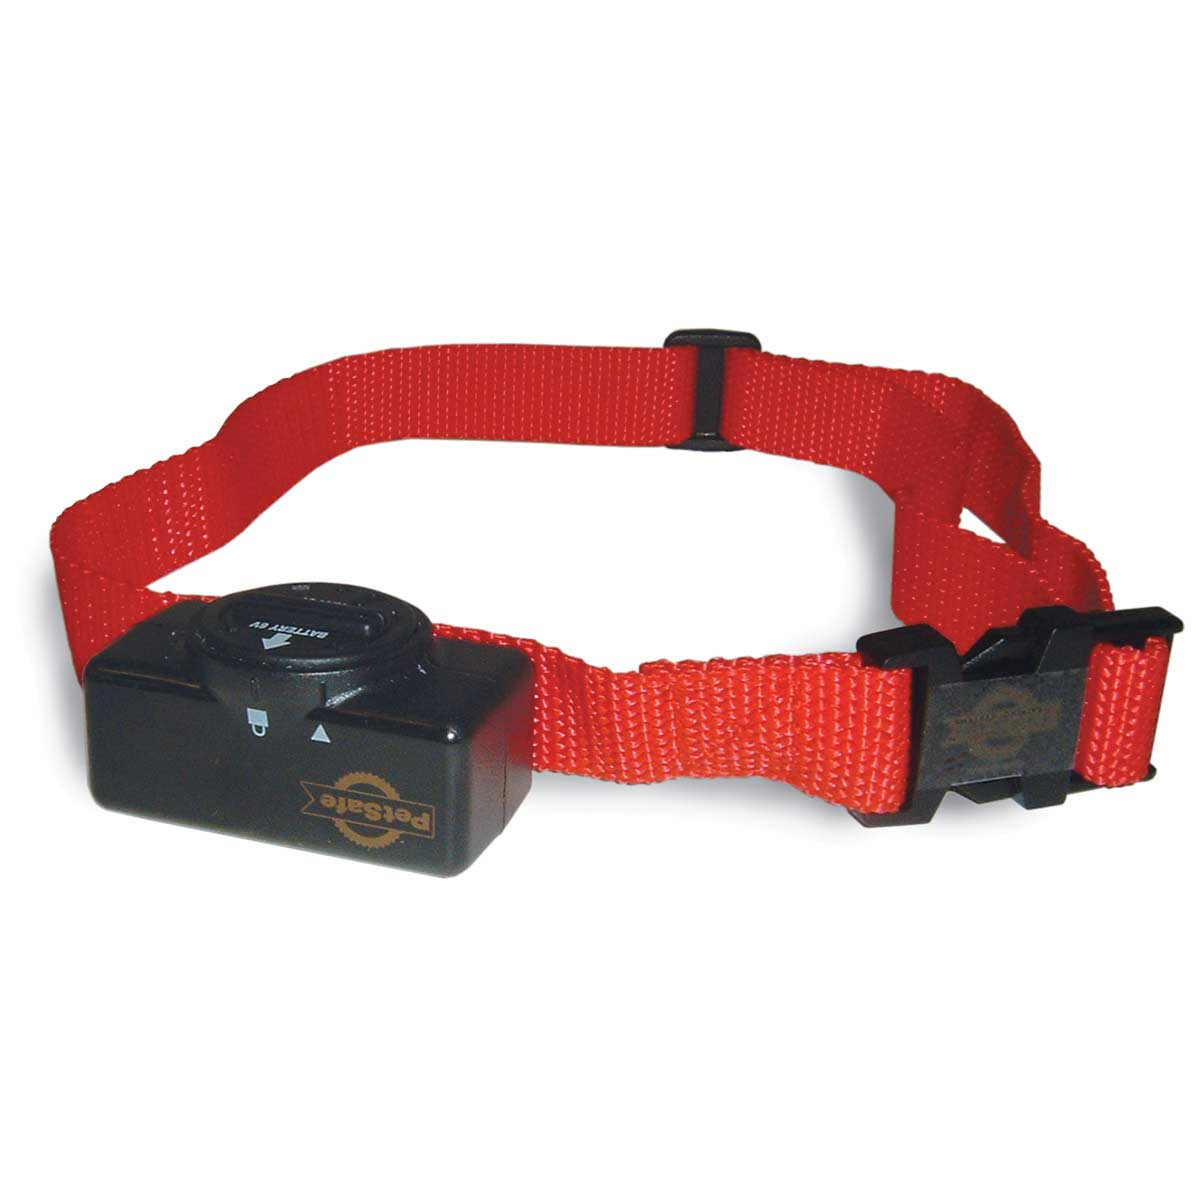 PetSafe Bark Control Collar for Dogs